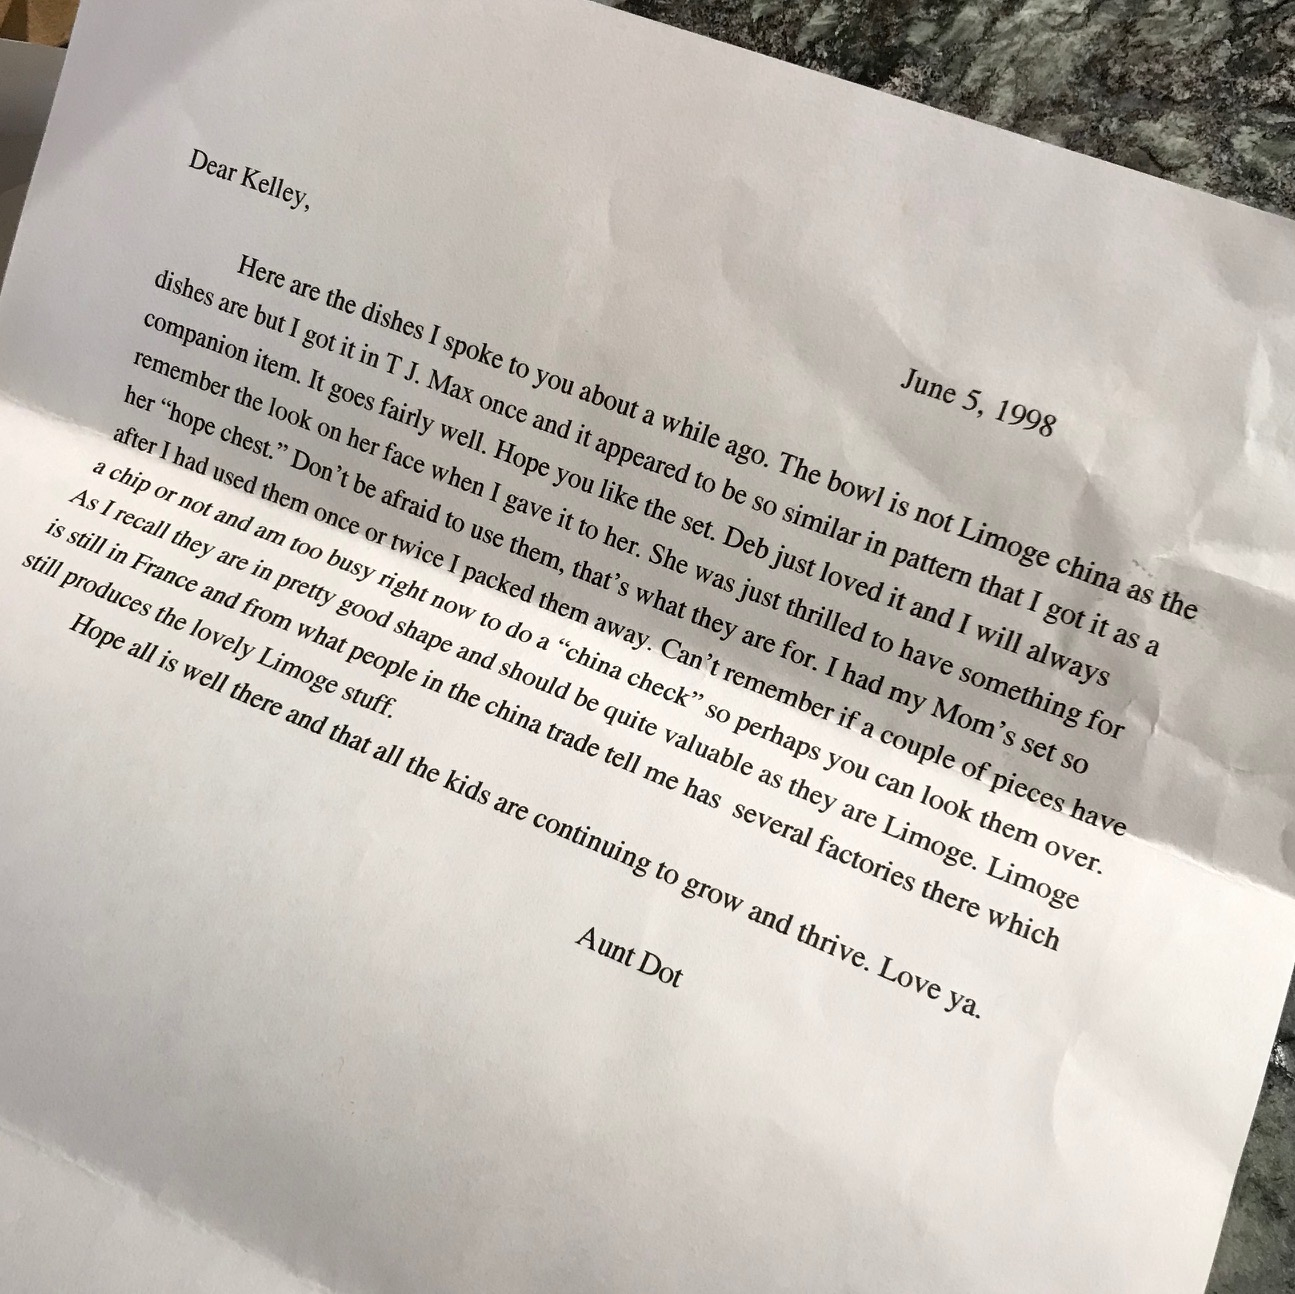 aunt dots china letter.jpg